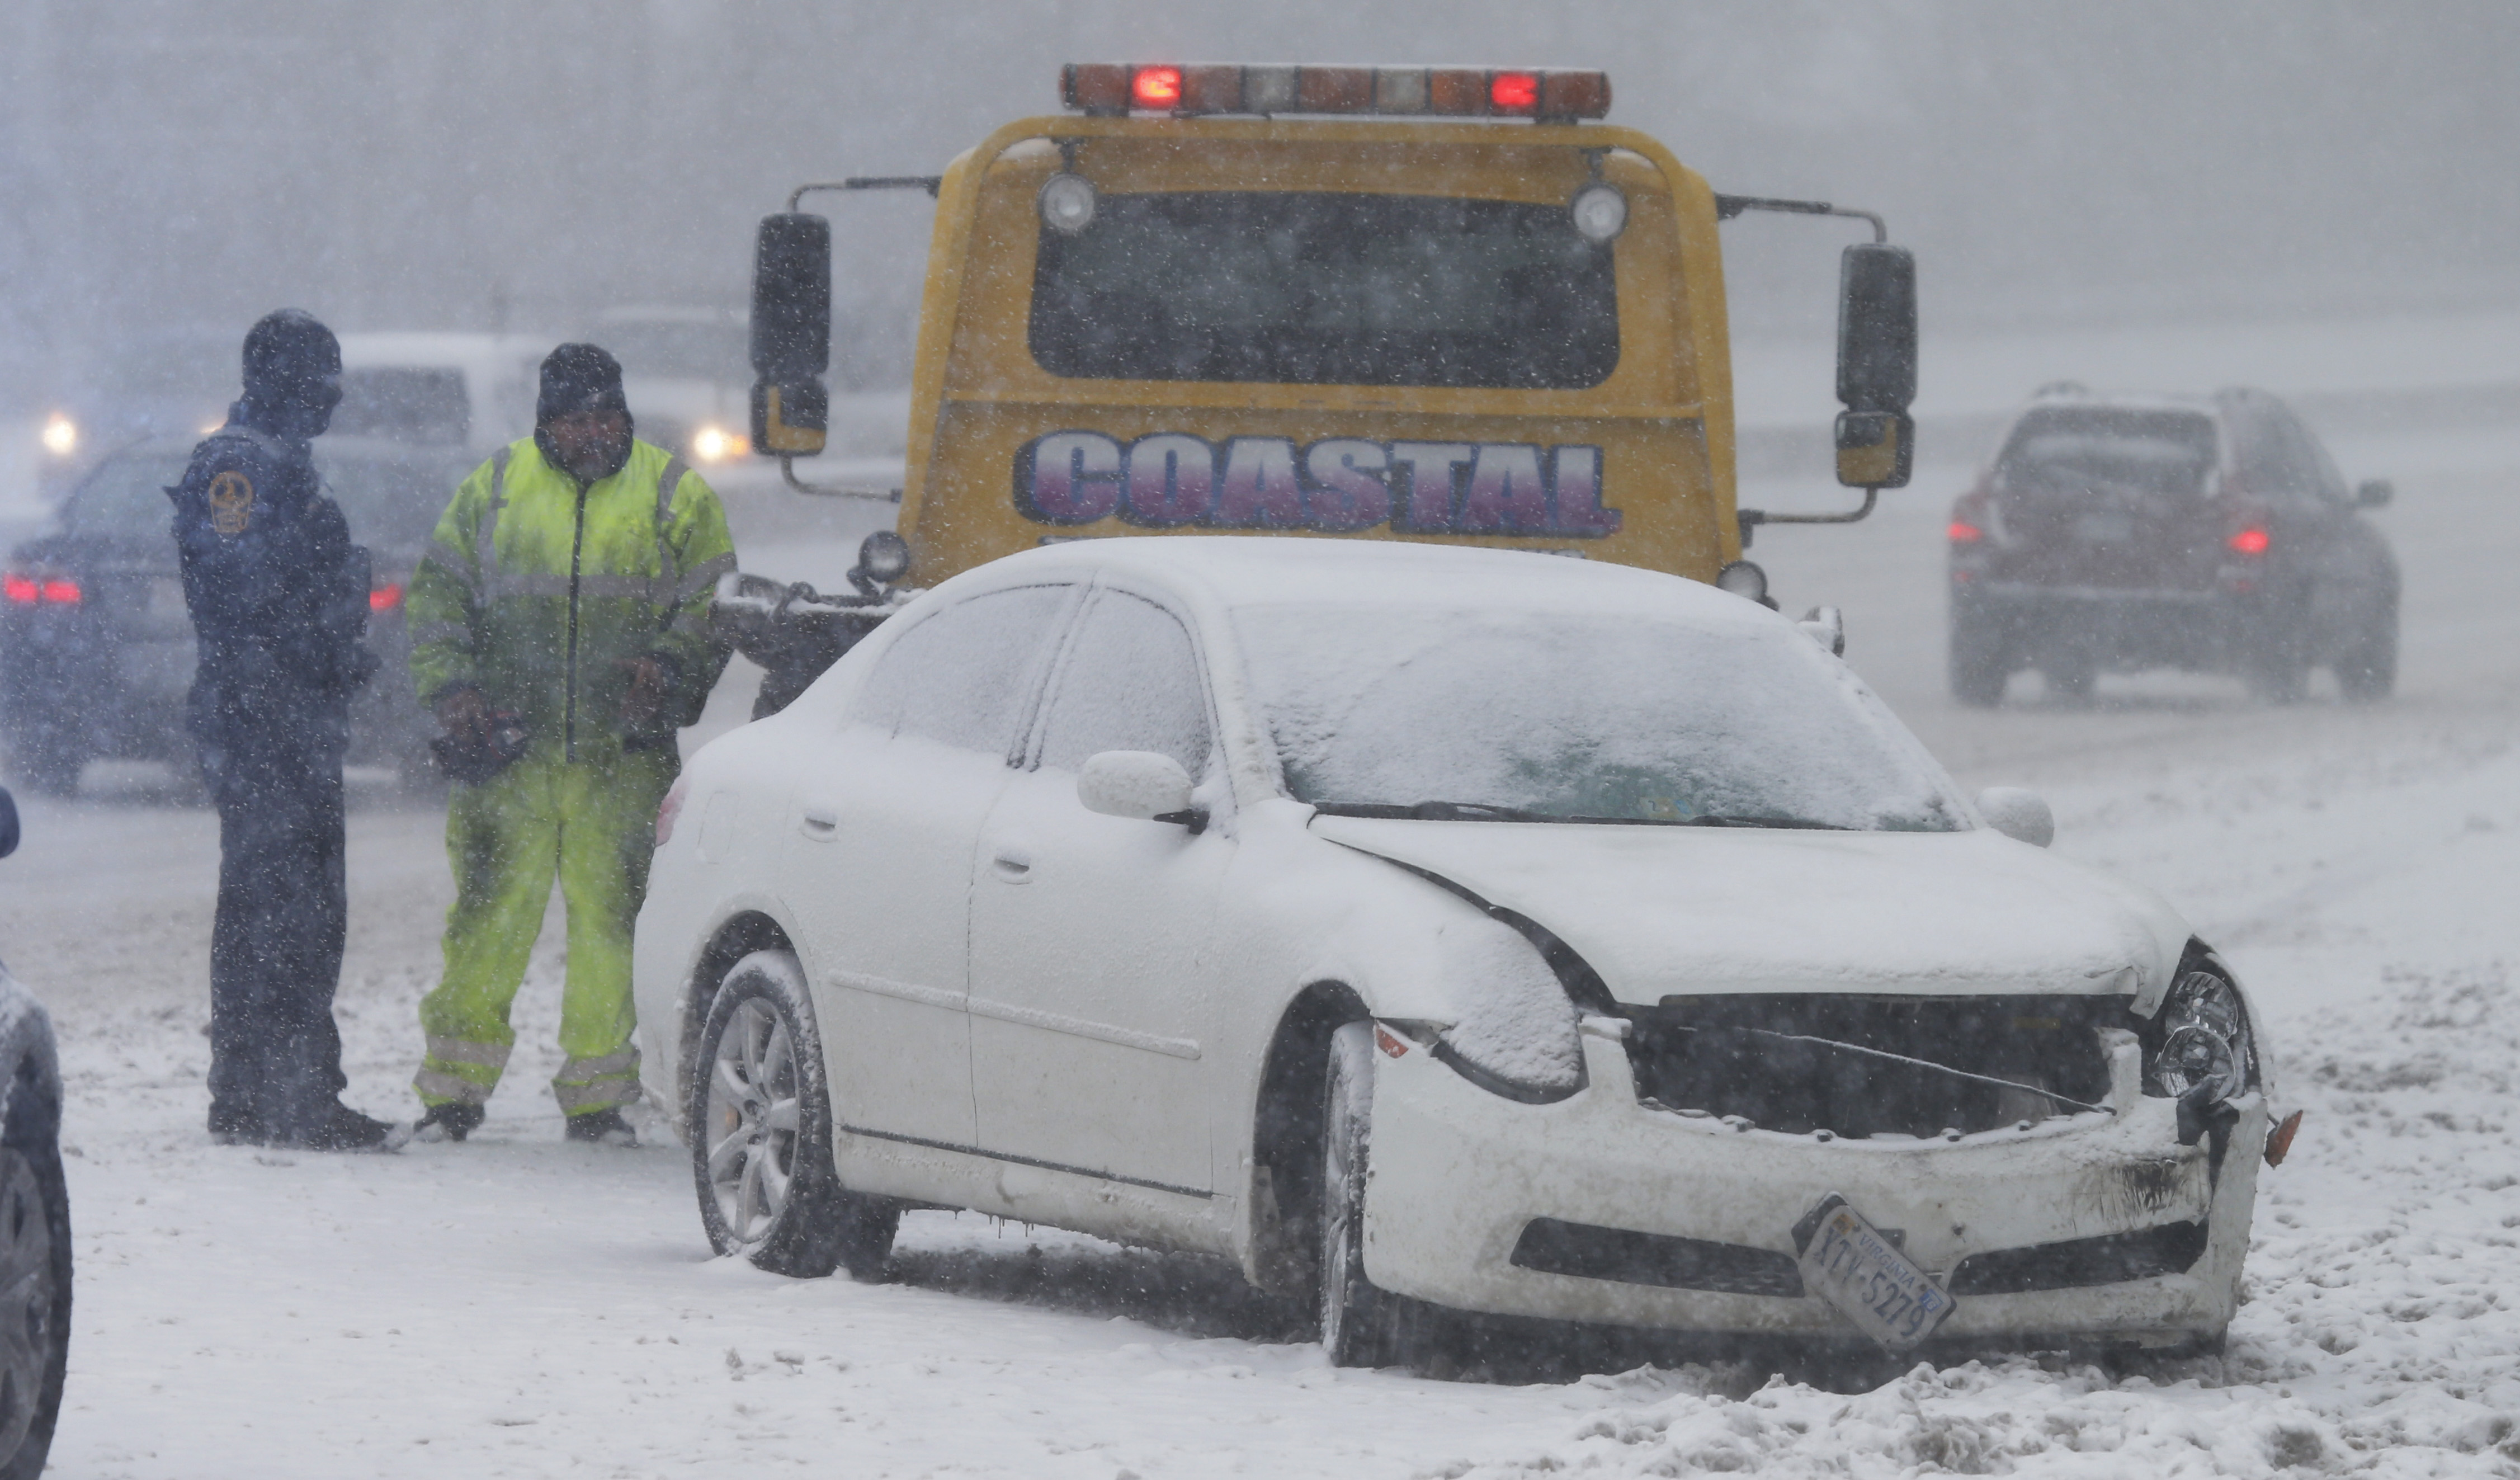 Car accident in blizzard